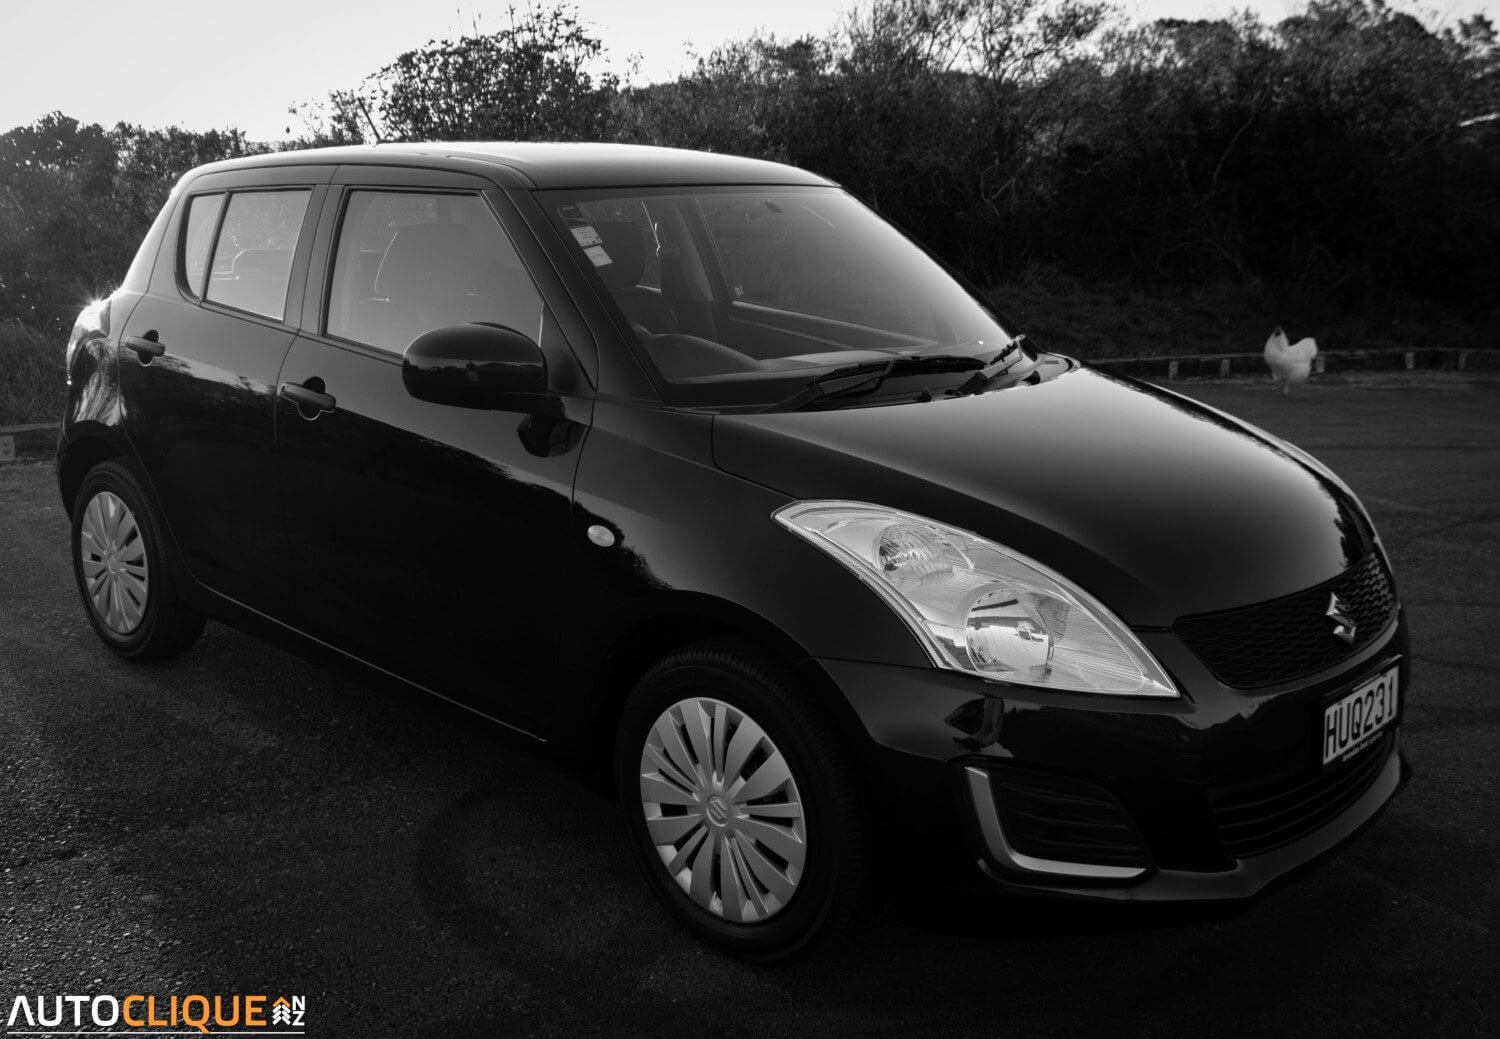 suzuki swift 1 4 gl car review 20k challenge drive life. Black Bedroom Furniture Sets. Home Design Ideas